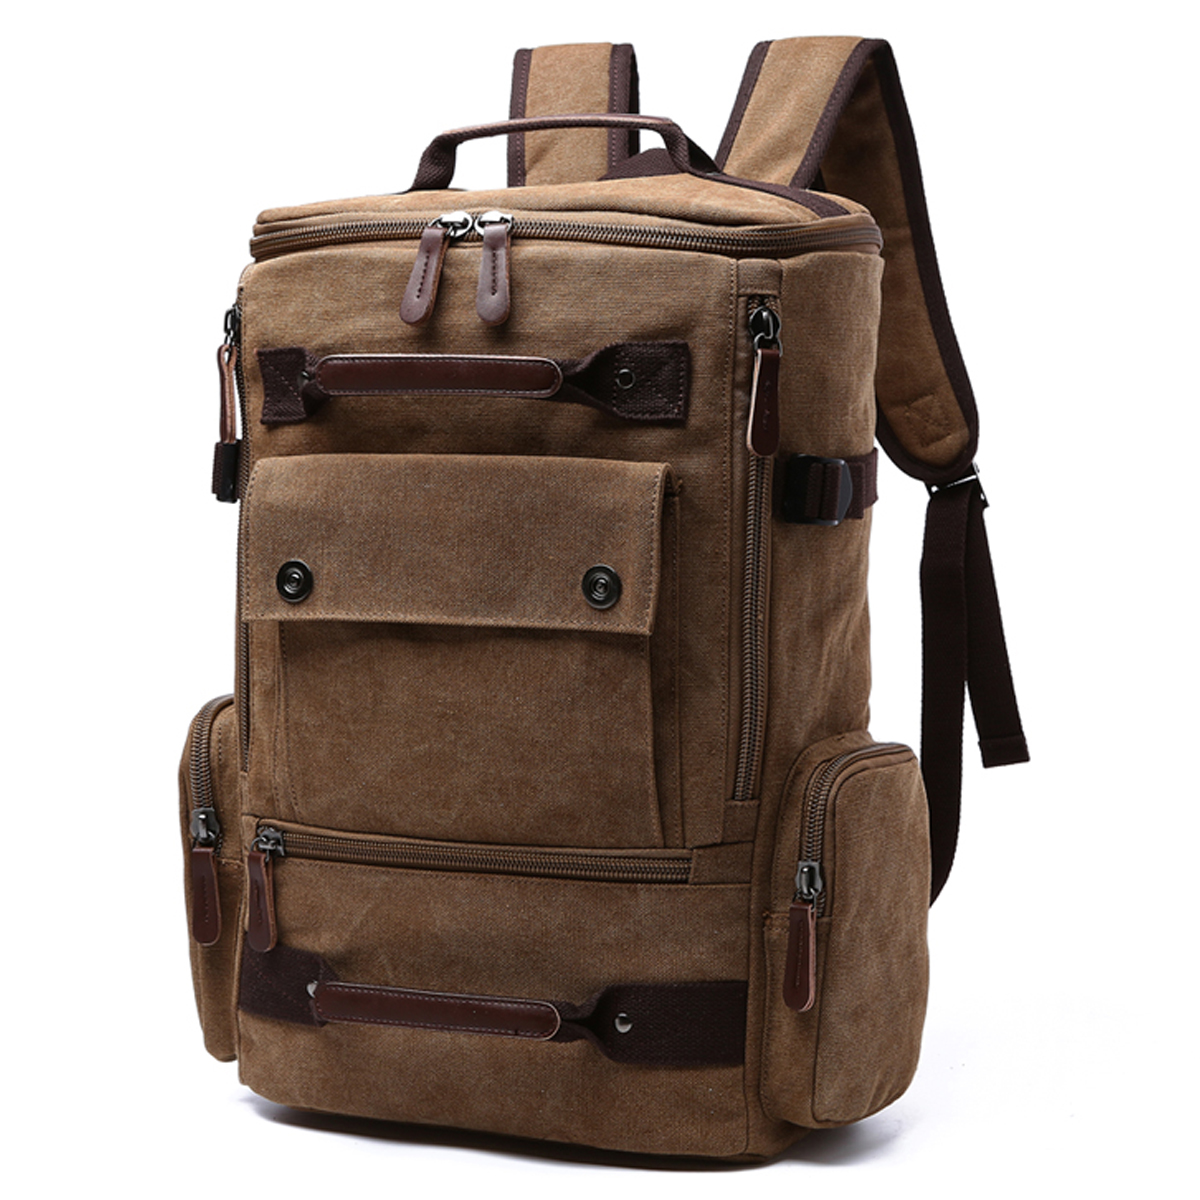 Dasein Vintage Unisex Canvas Backpack- School, Office, Weekend, Travel, Hiking Rucksack